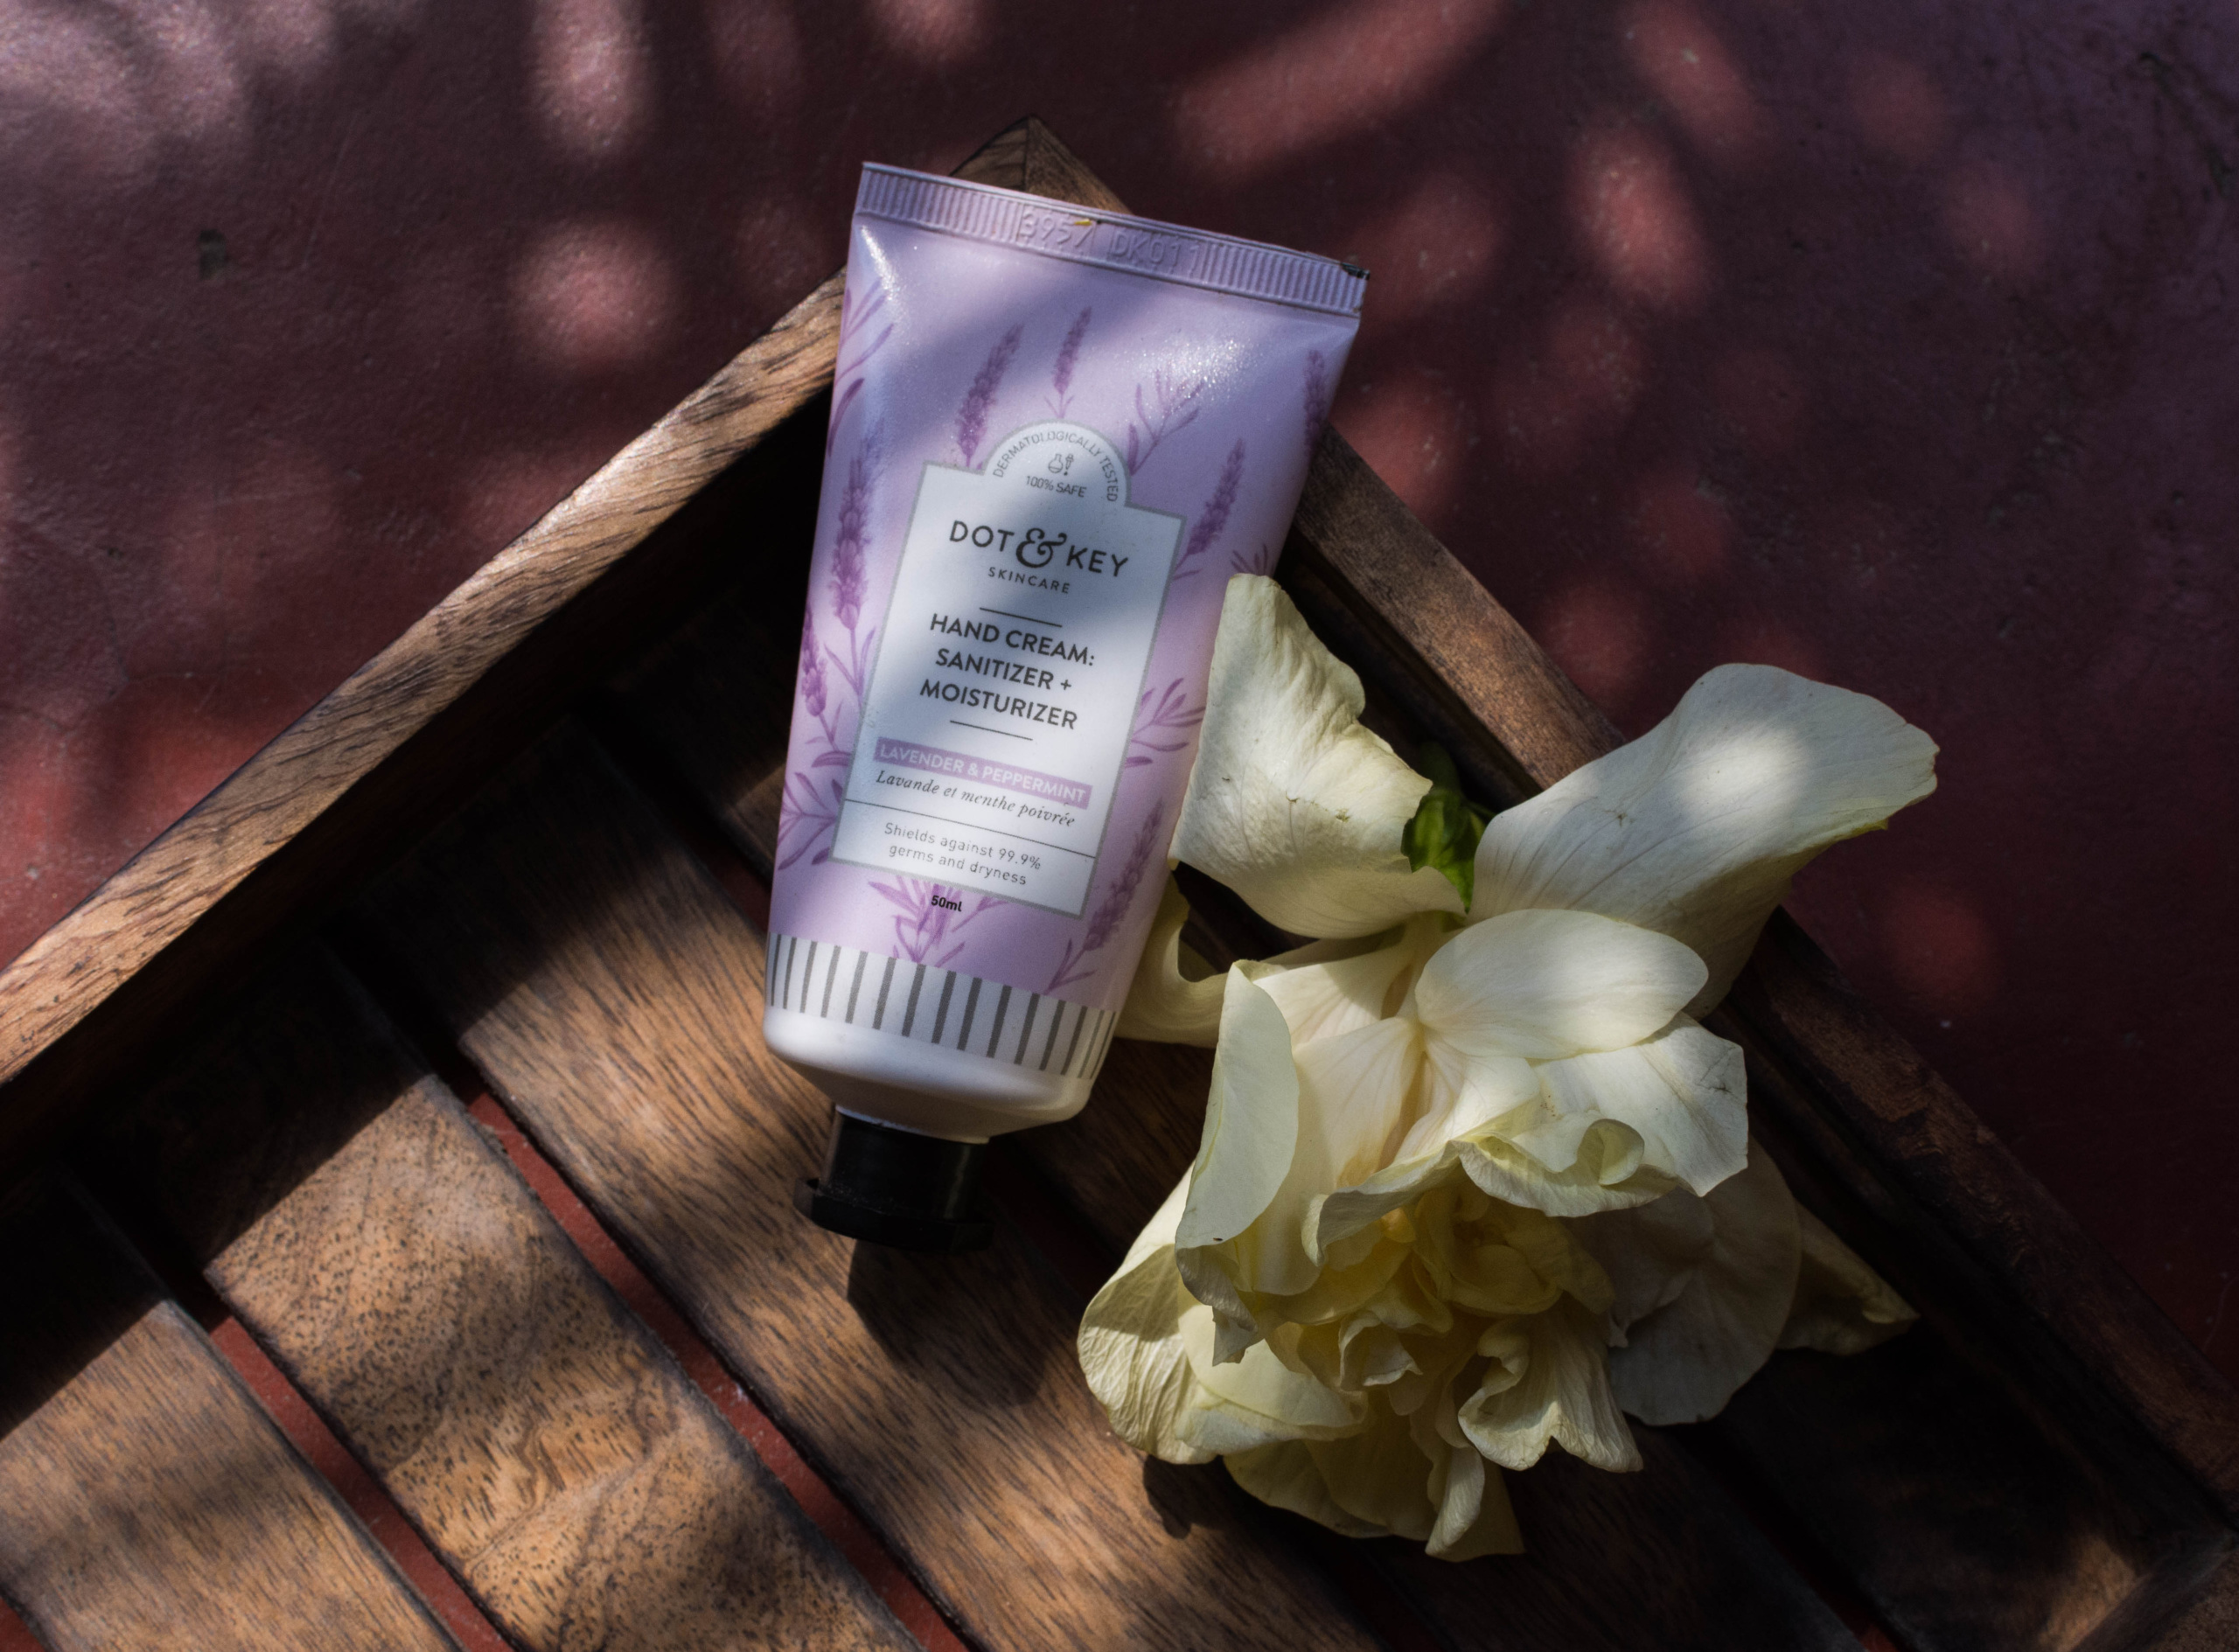 Dot & Key Hand cream and Sanitizer- Lavender Review | Cherry On Top